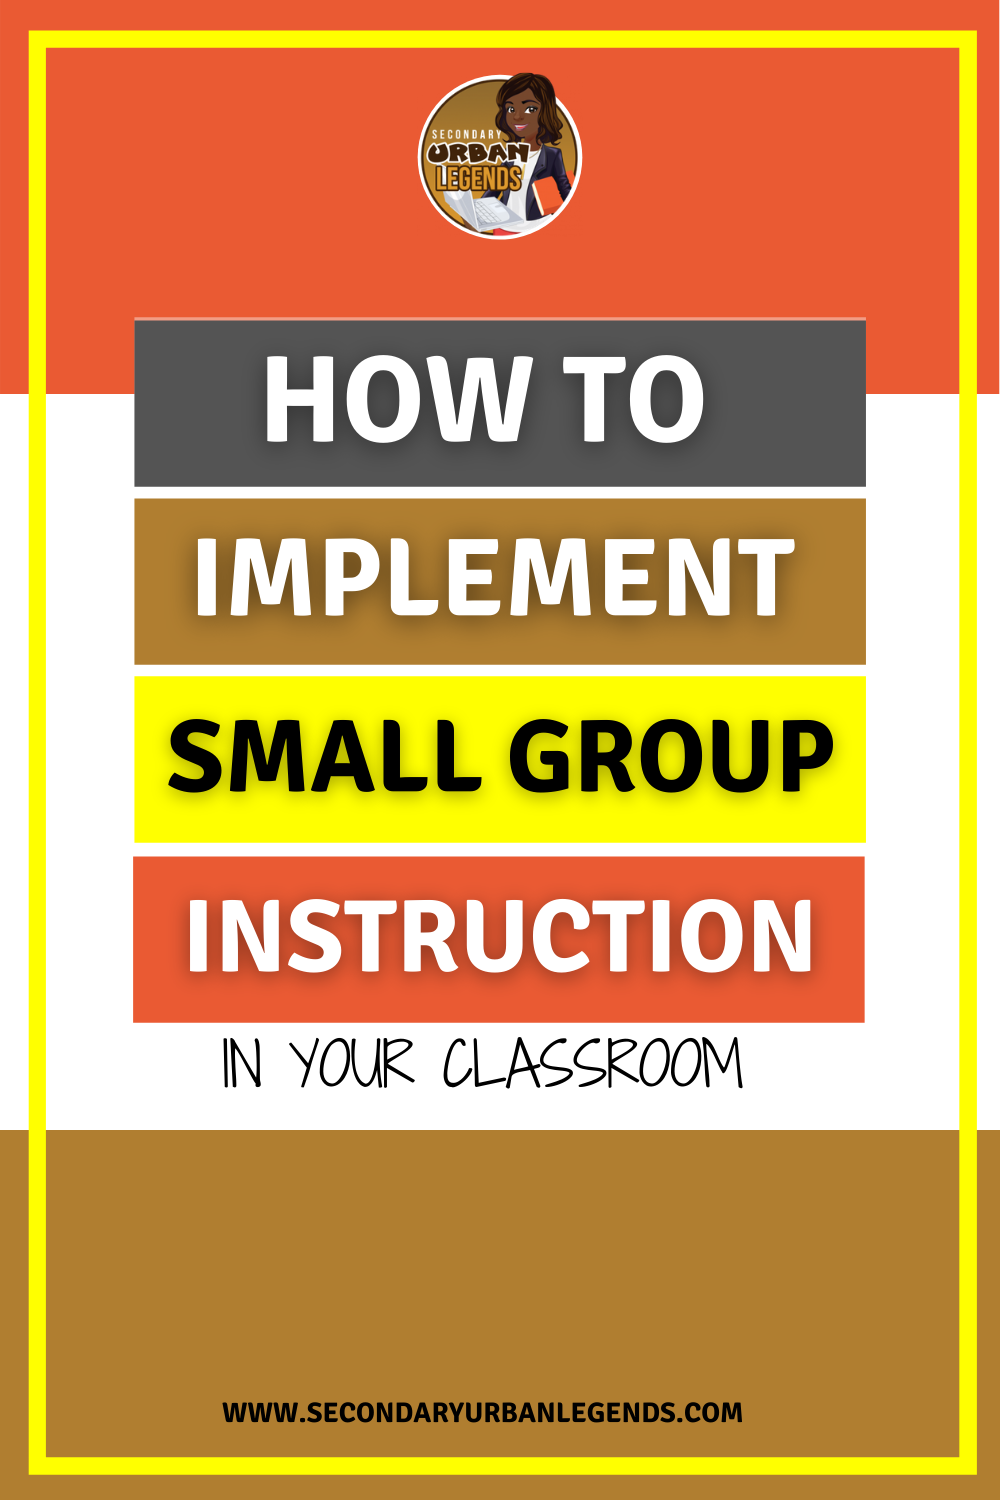 How To Implement Small Group Instruction